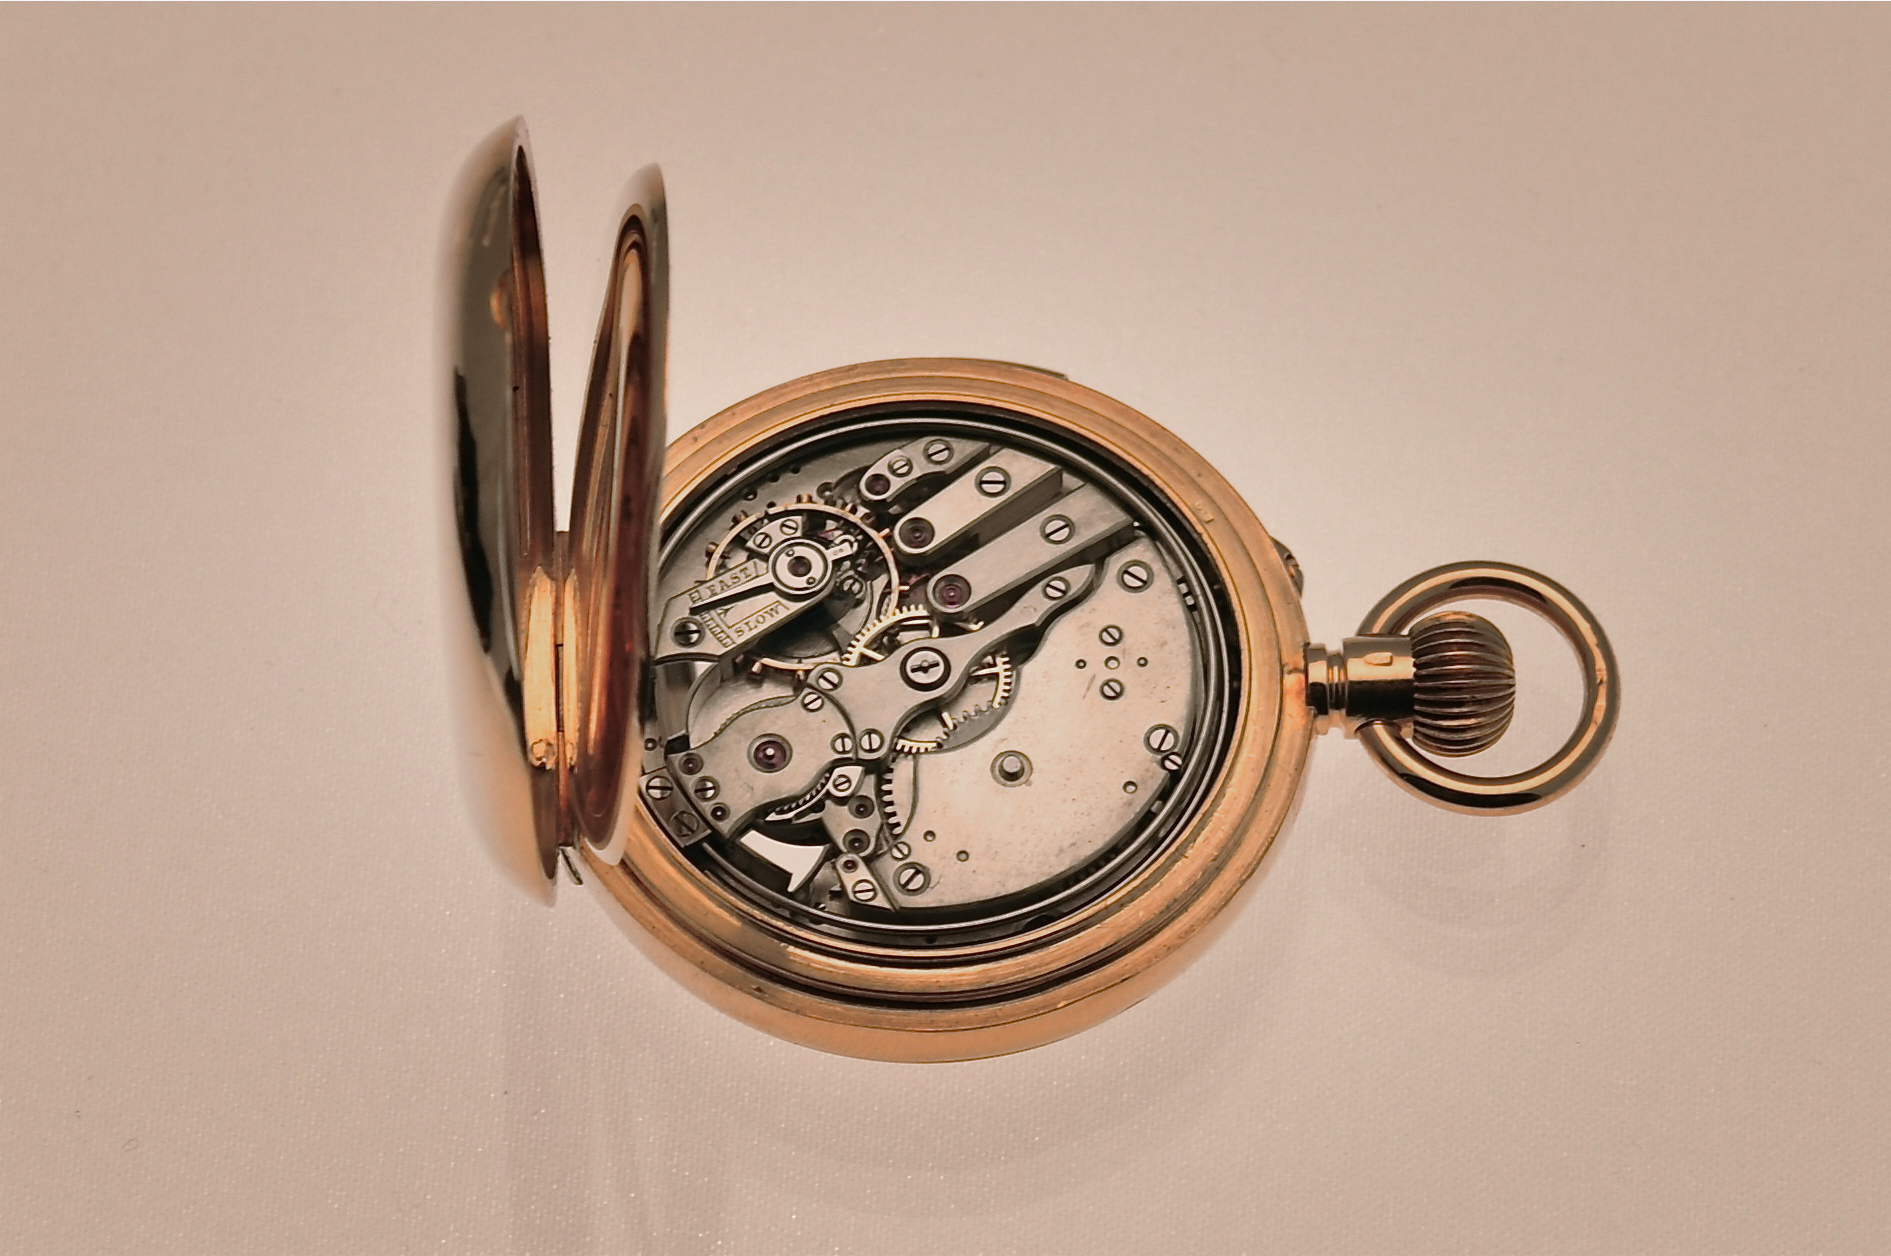 Le Trésor du temps montre Louis Audemars, 1877